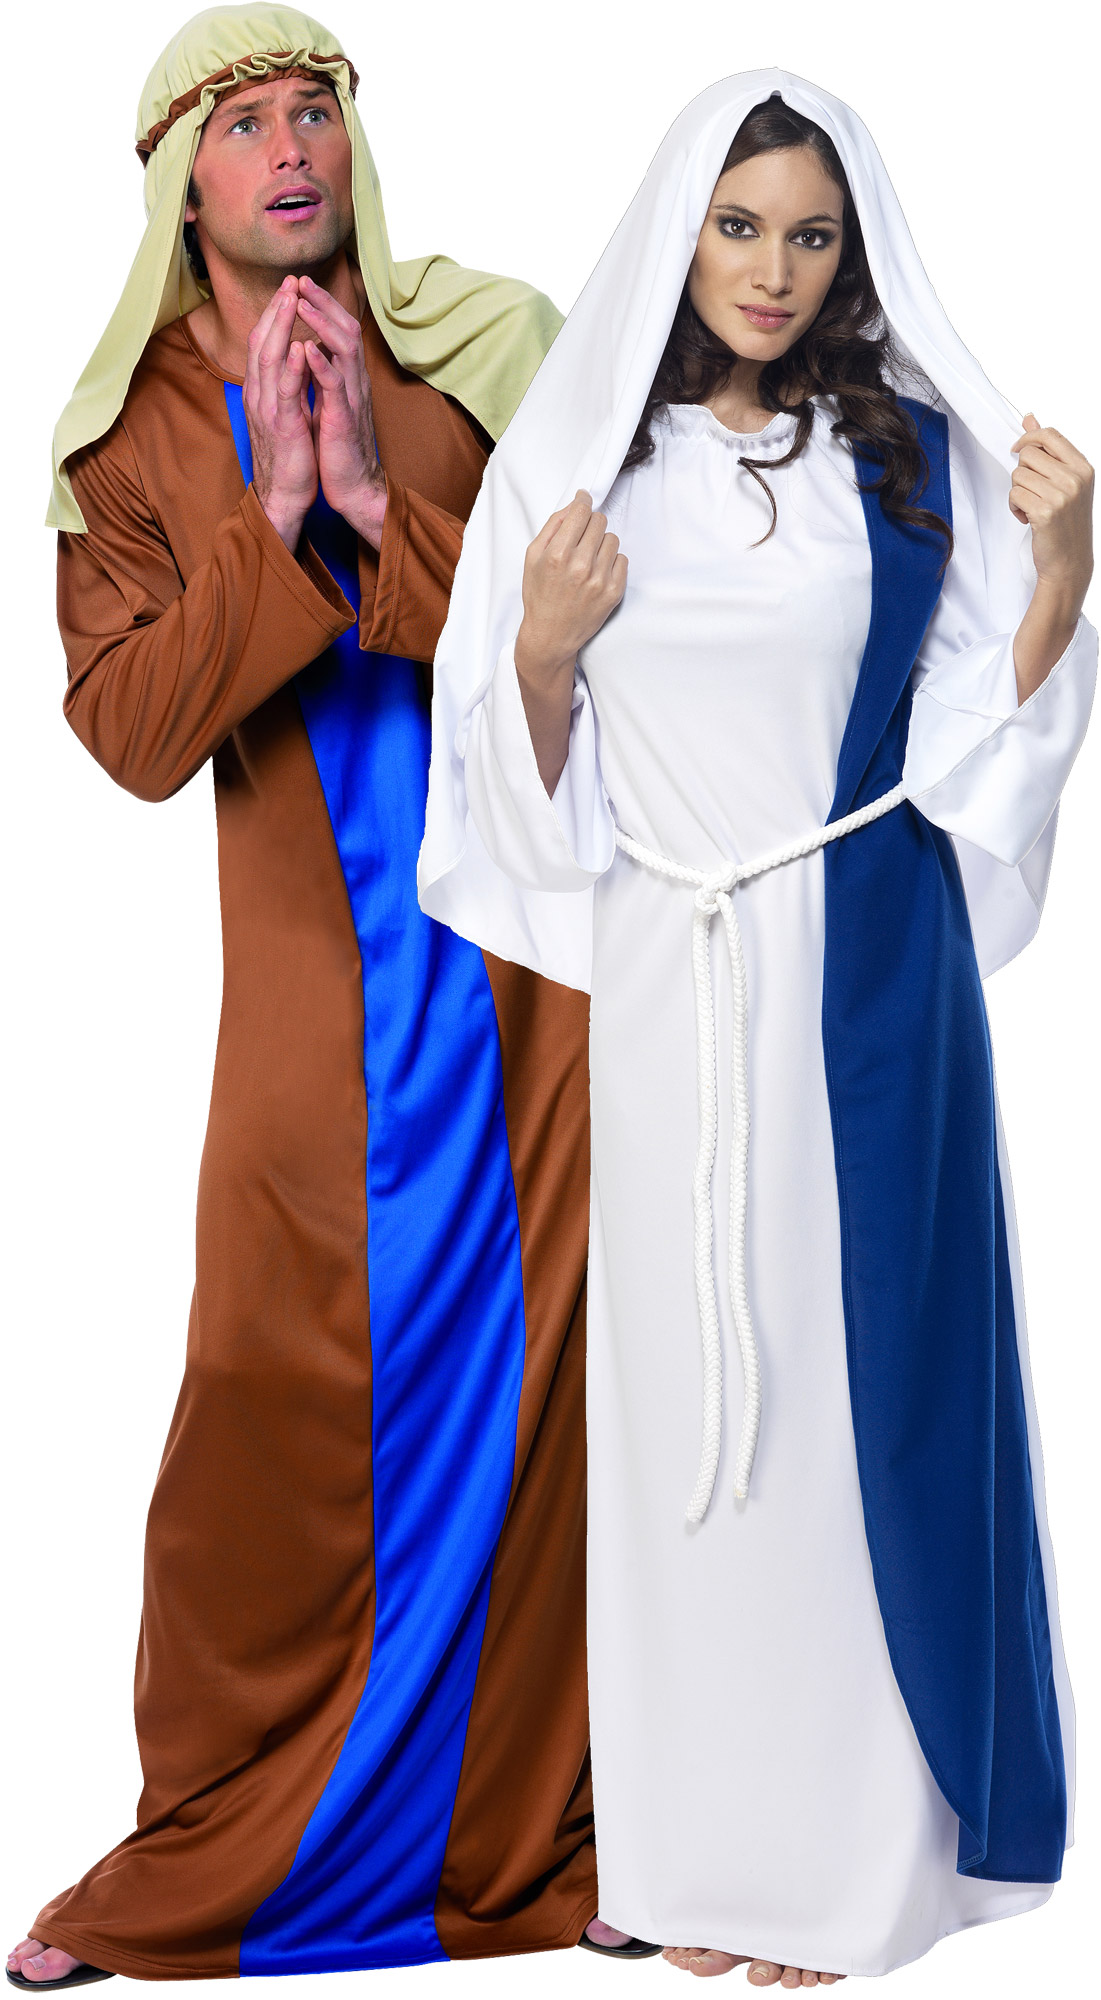 jesus and mary costume for couples. Black Bedroom Furniture Sets. Home Design Ideas